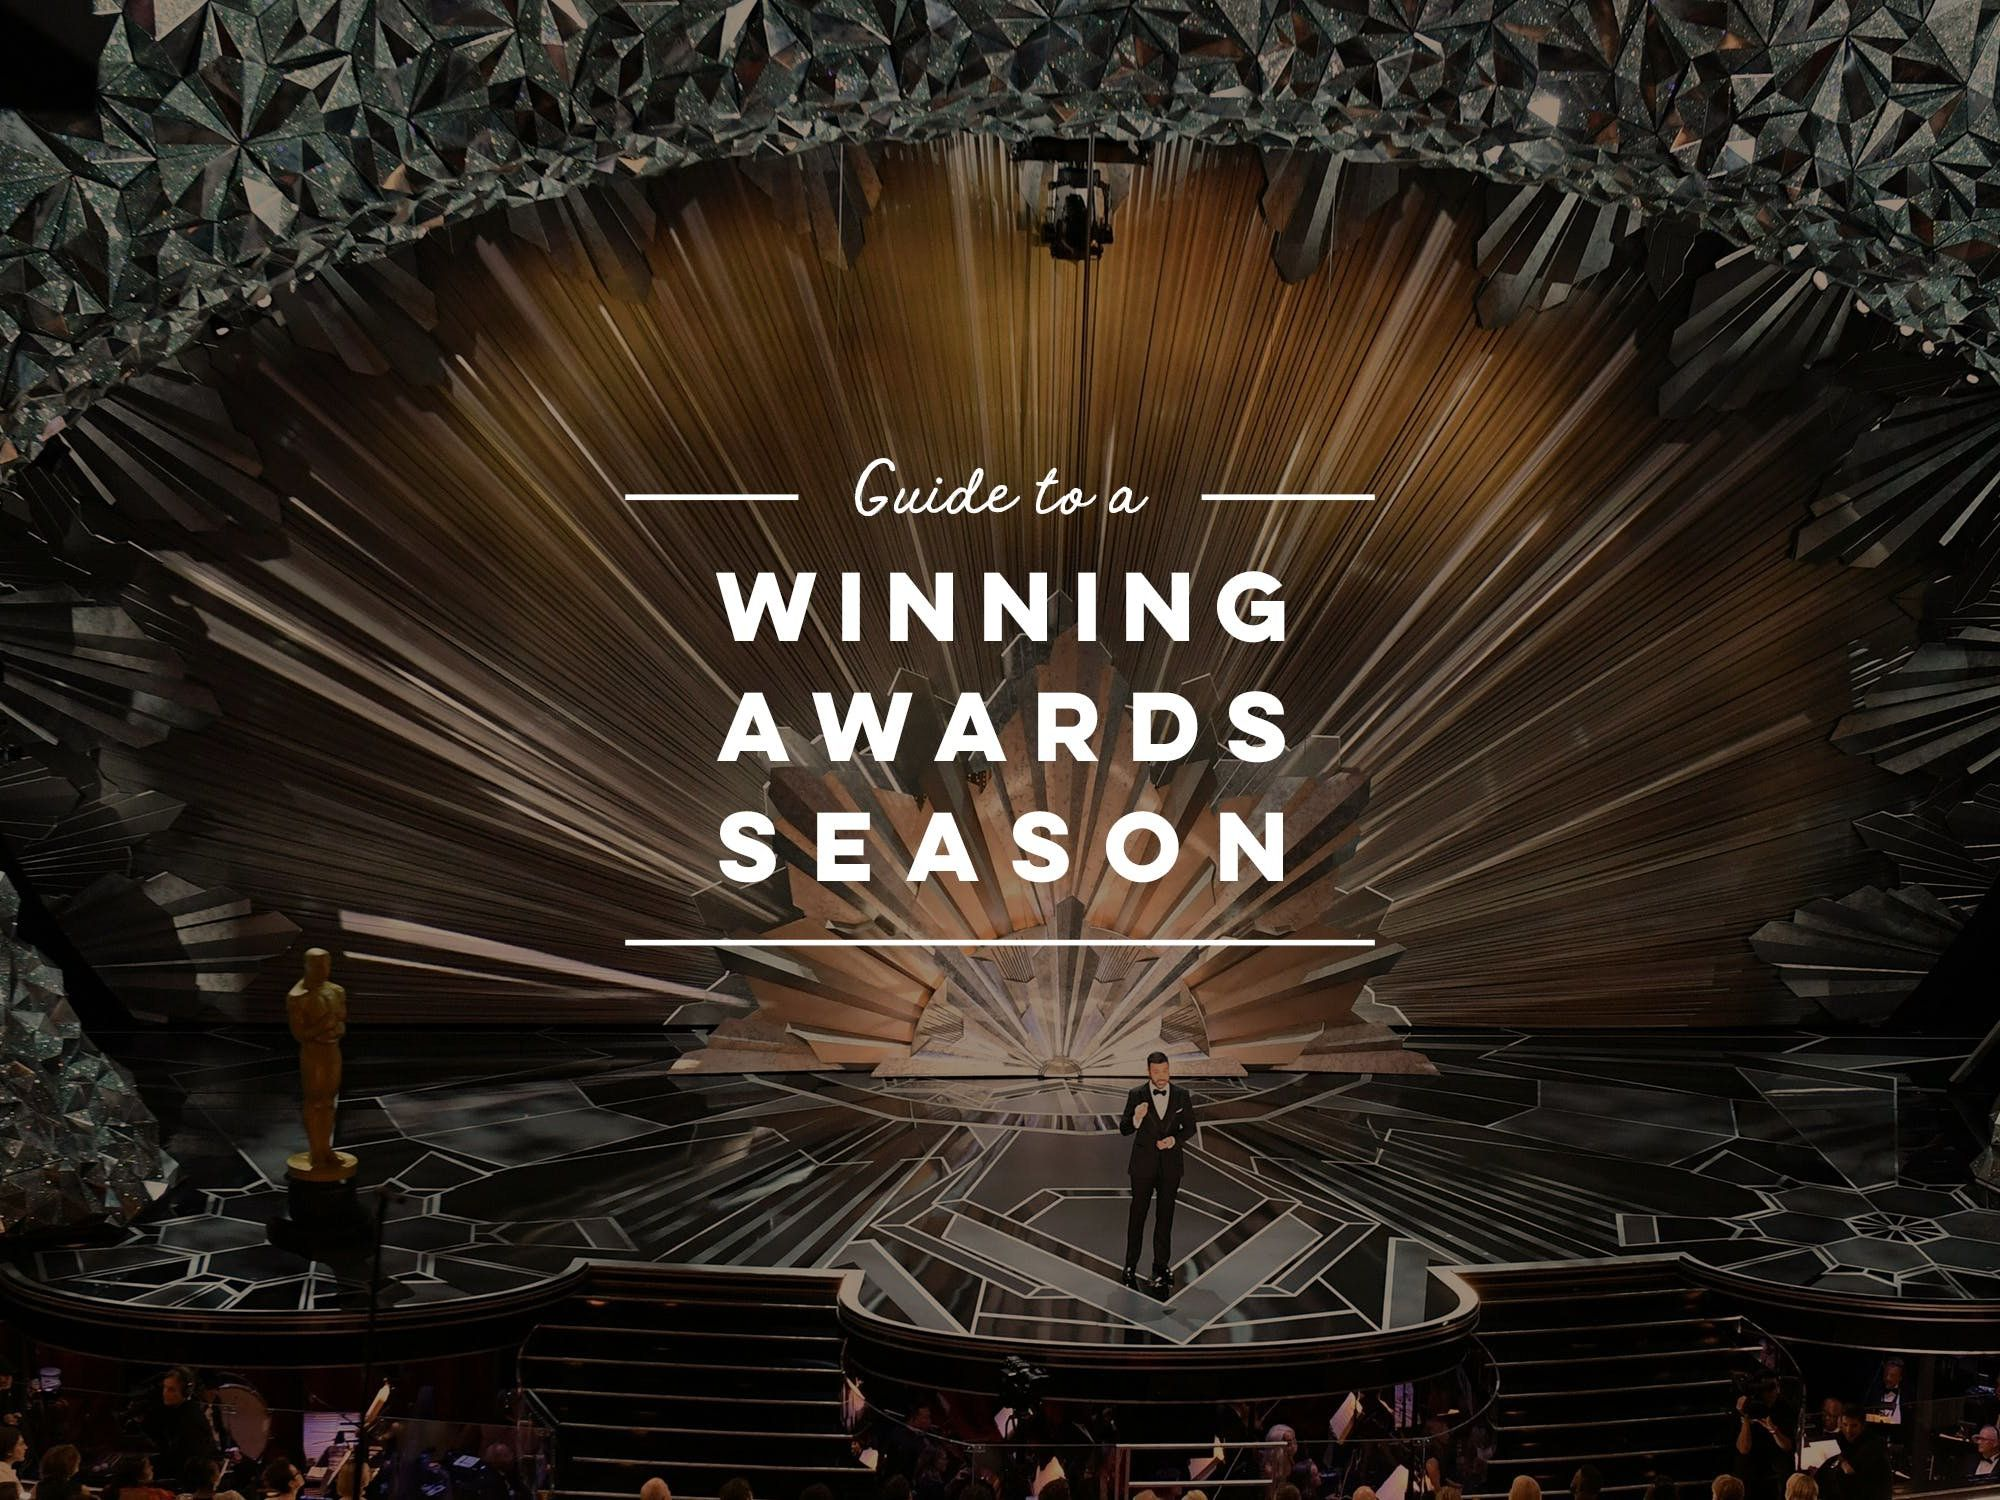 Brit + Co's Guide to a Winning Awards Season